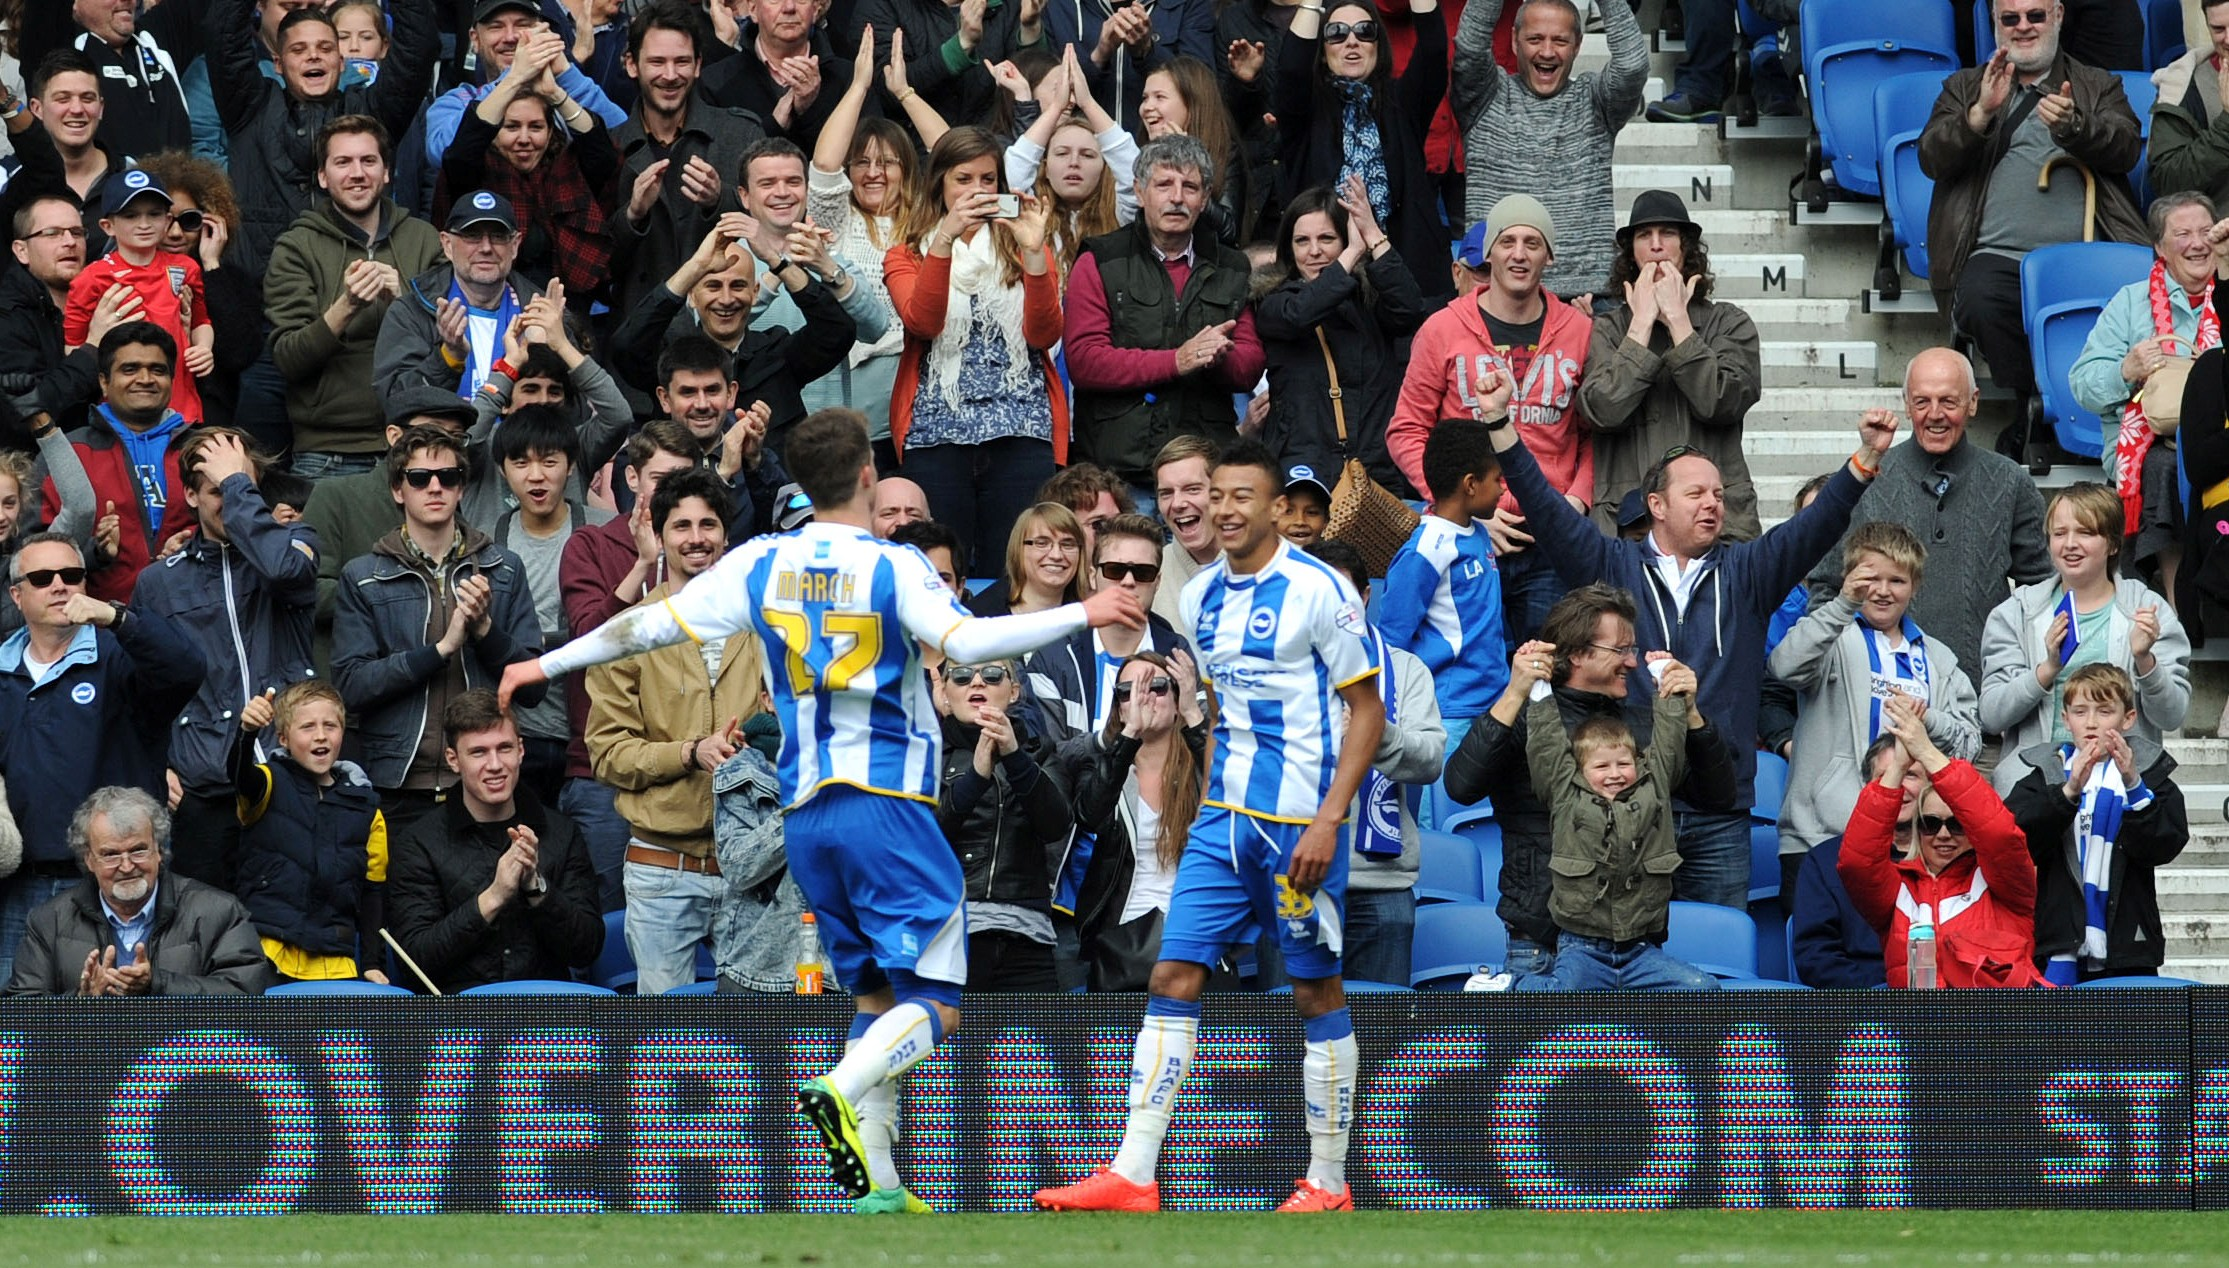 Video: Watch Albion move into the play-off positions with victory over Charlton